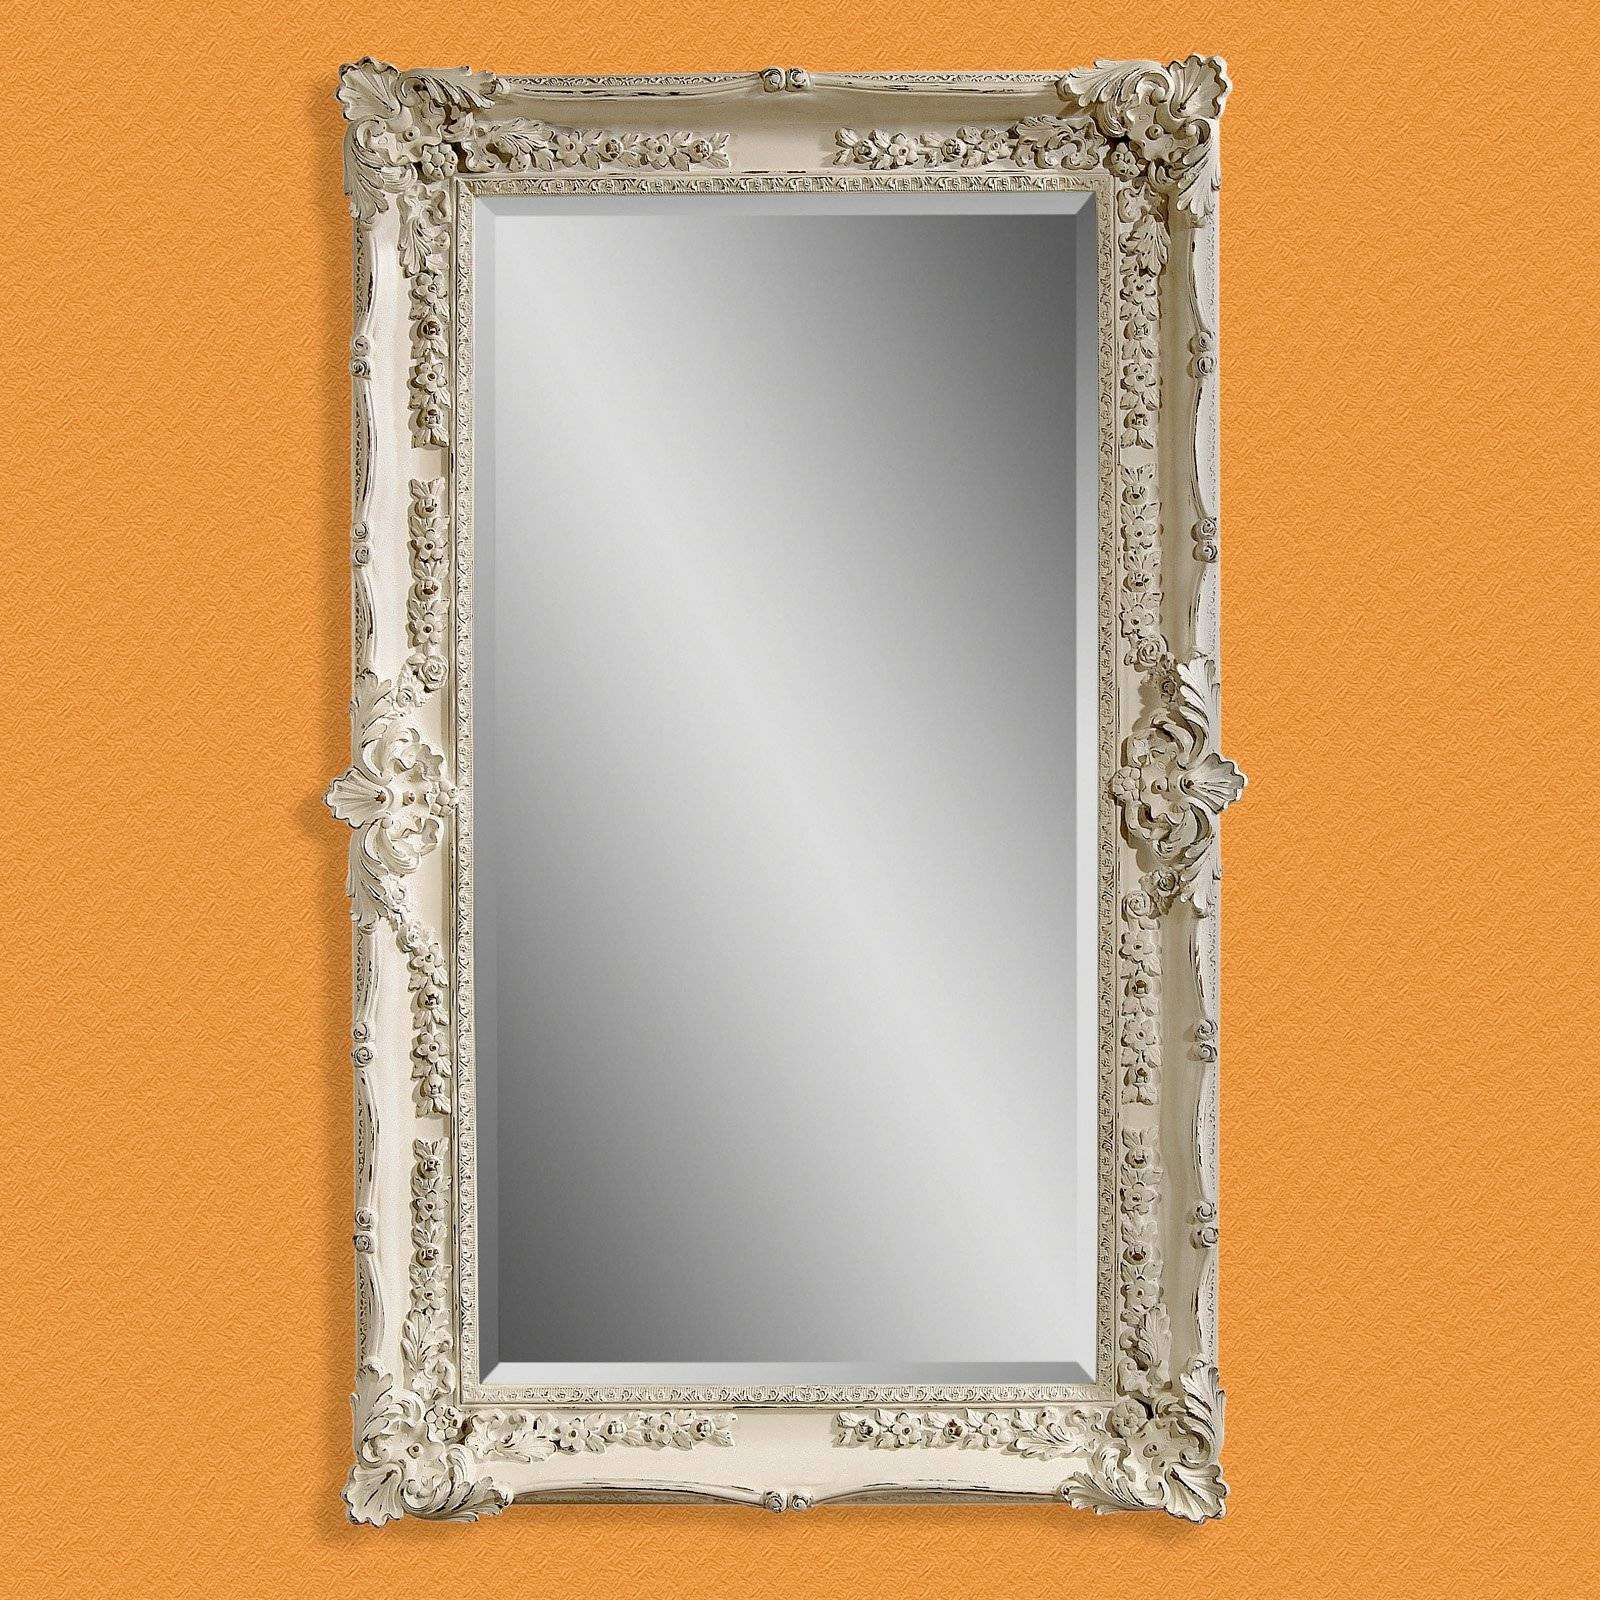 Antique White Wall / Leaning Floor Mirror - 43W X 69H In. | Hayneedle intended for Vintage Wall Mirrors (Image 9 of 25)